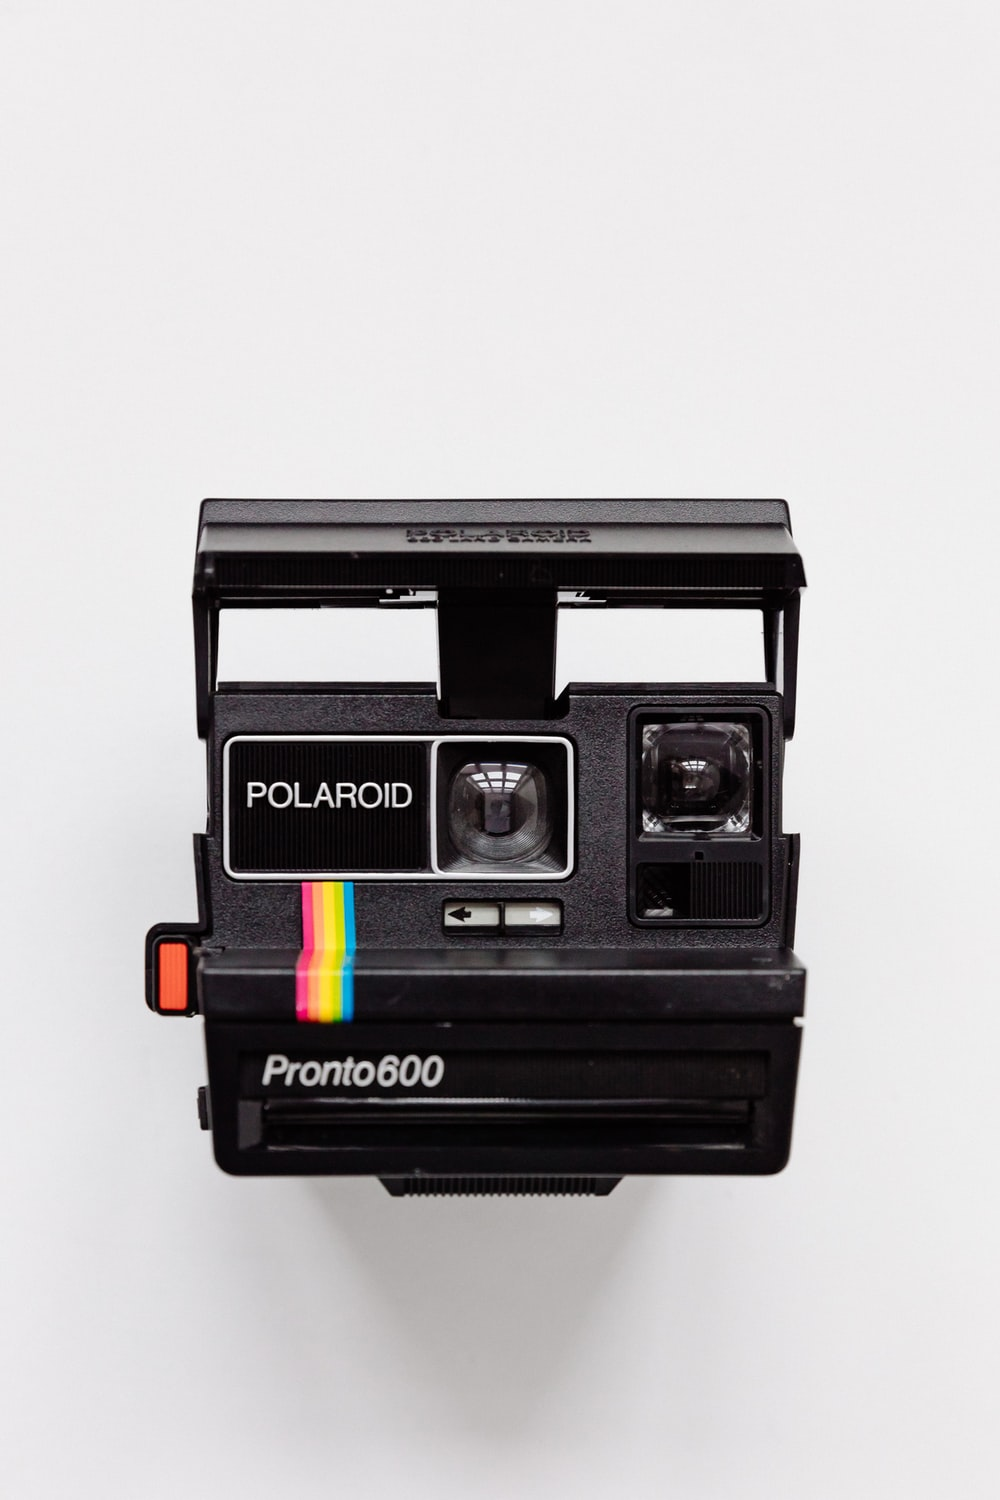 black Polaroid camera with white background